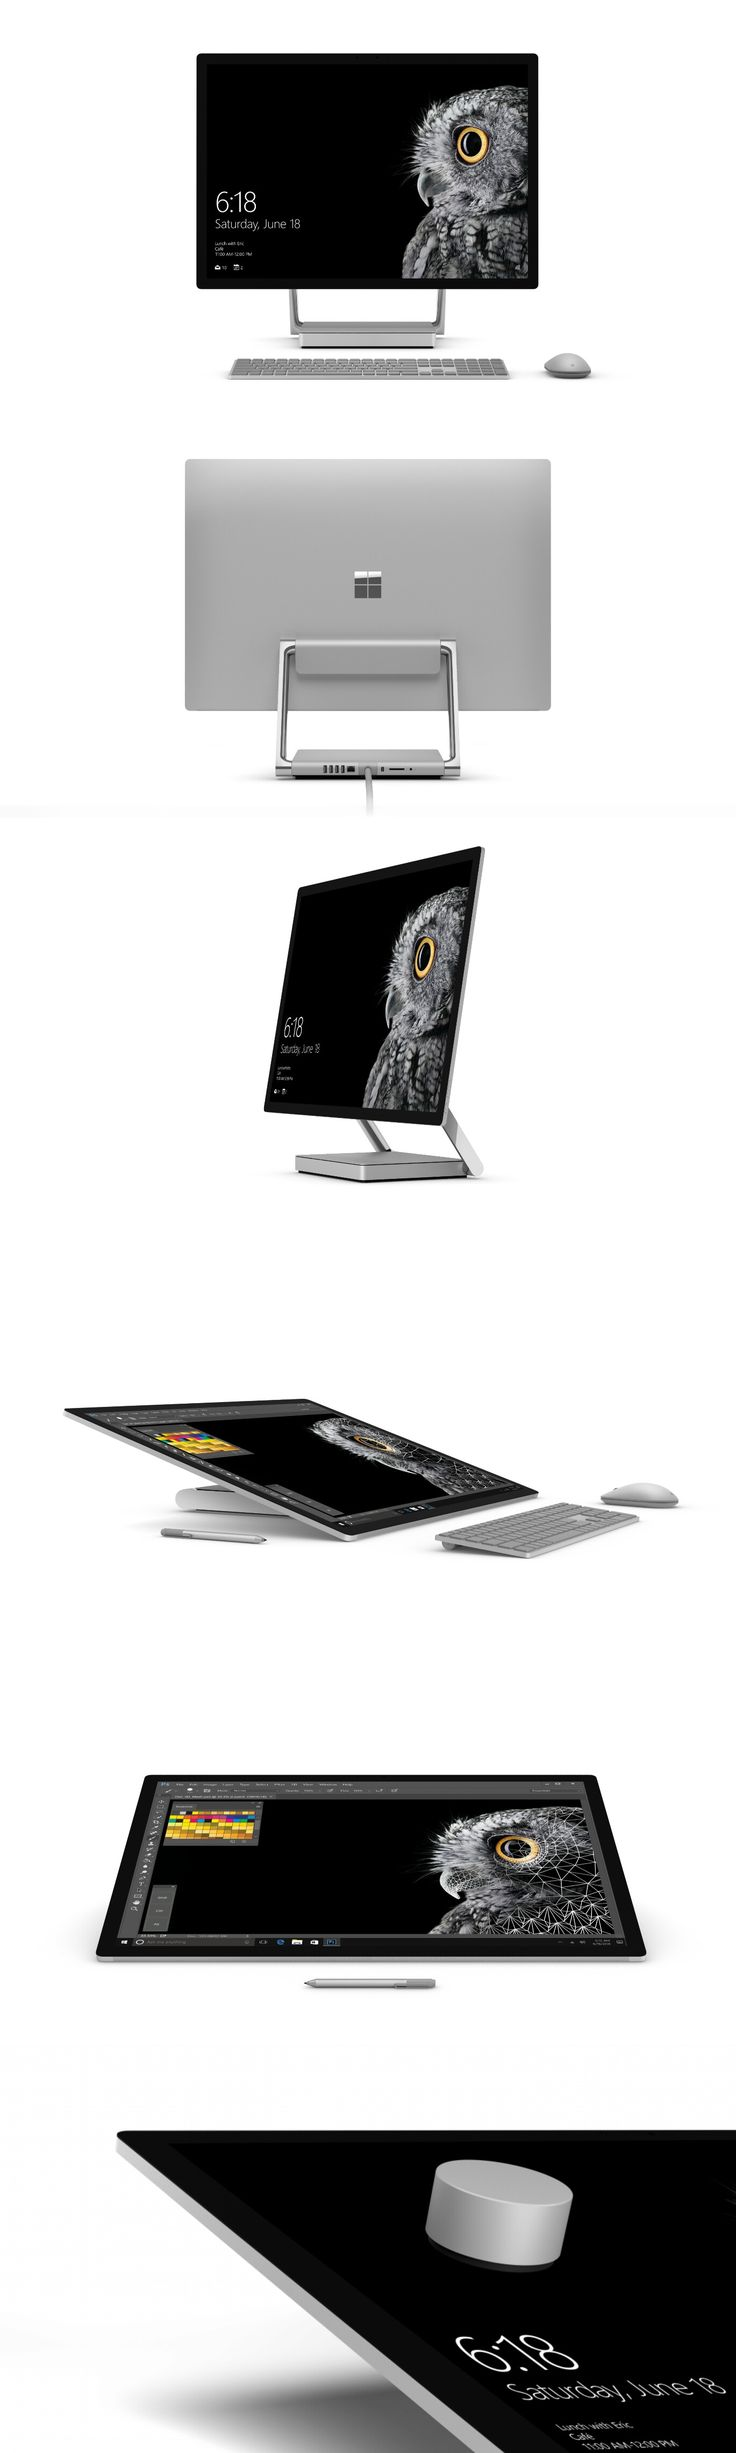 Microsoft Surface Studio. Want so bad! Some day when I have more disposable income and fewer bills